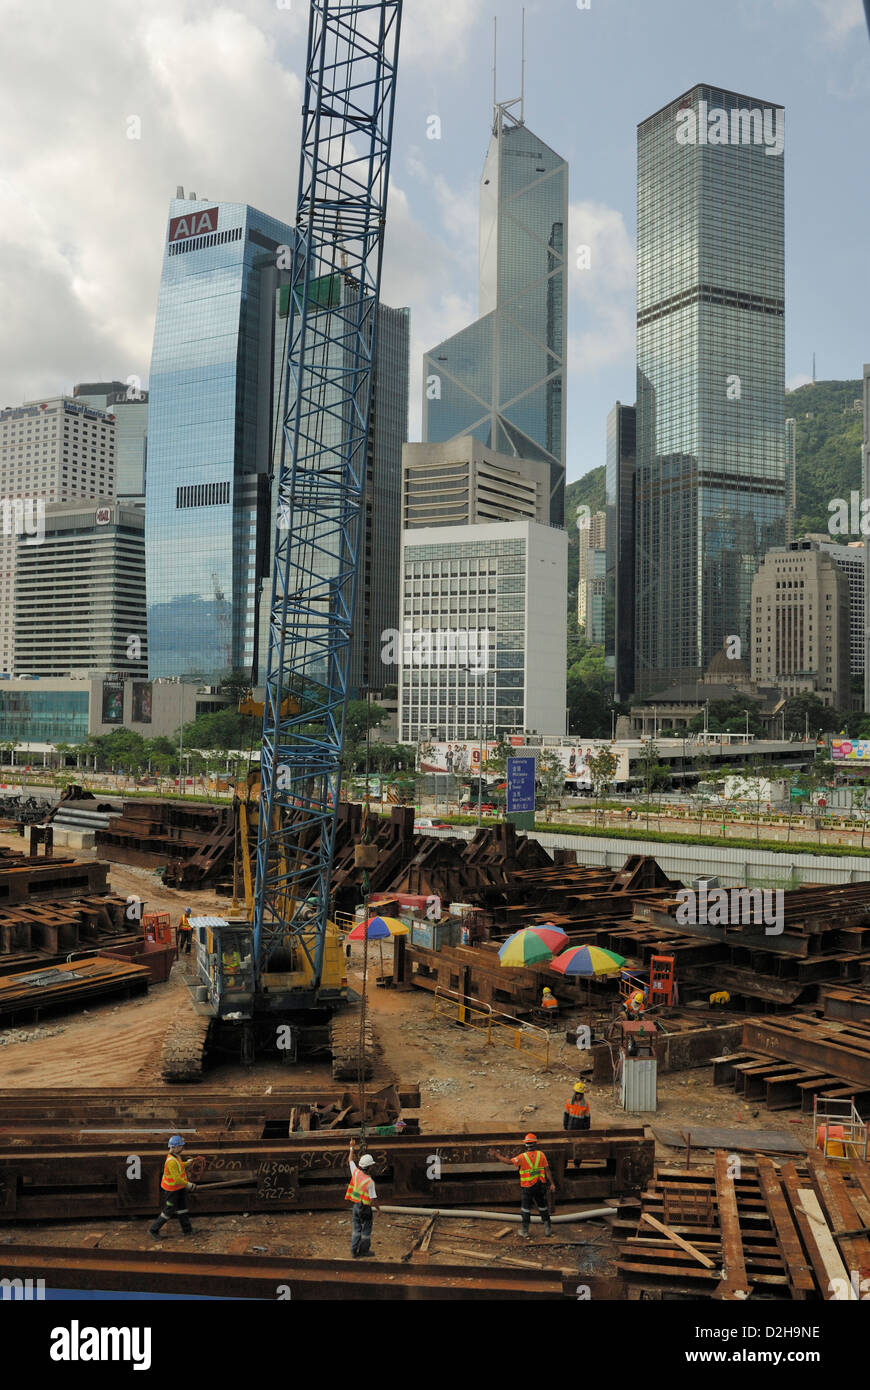 Steel girder construction site located near The Pier, Hong Kong Central District, China. Stock Photo